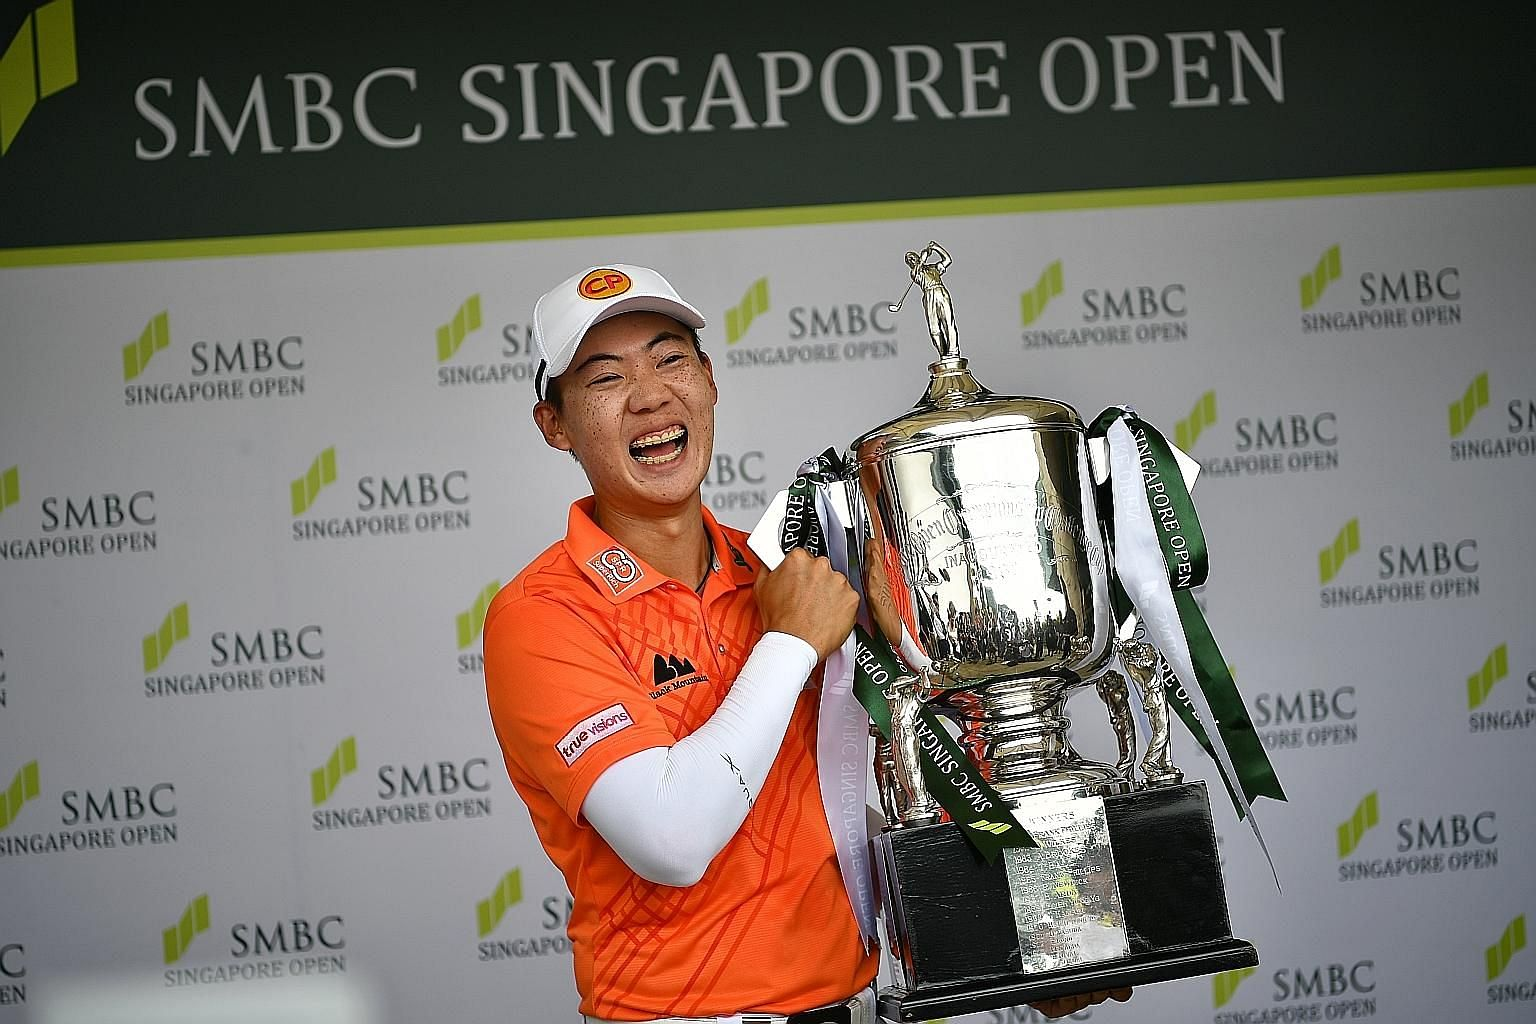 Jazz Janewattananond posing with the SMBC Singapore Open trophy yesterday. The 23-year-old Thai's 18-under 266 total was the lowest winning score at Sentosa Golf Club's Serapong Course, surpassing the 17-under 267 set by three-time Singapore Open win